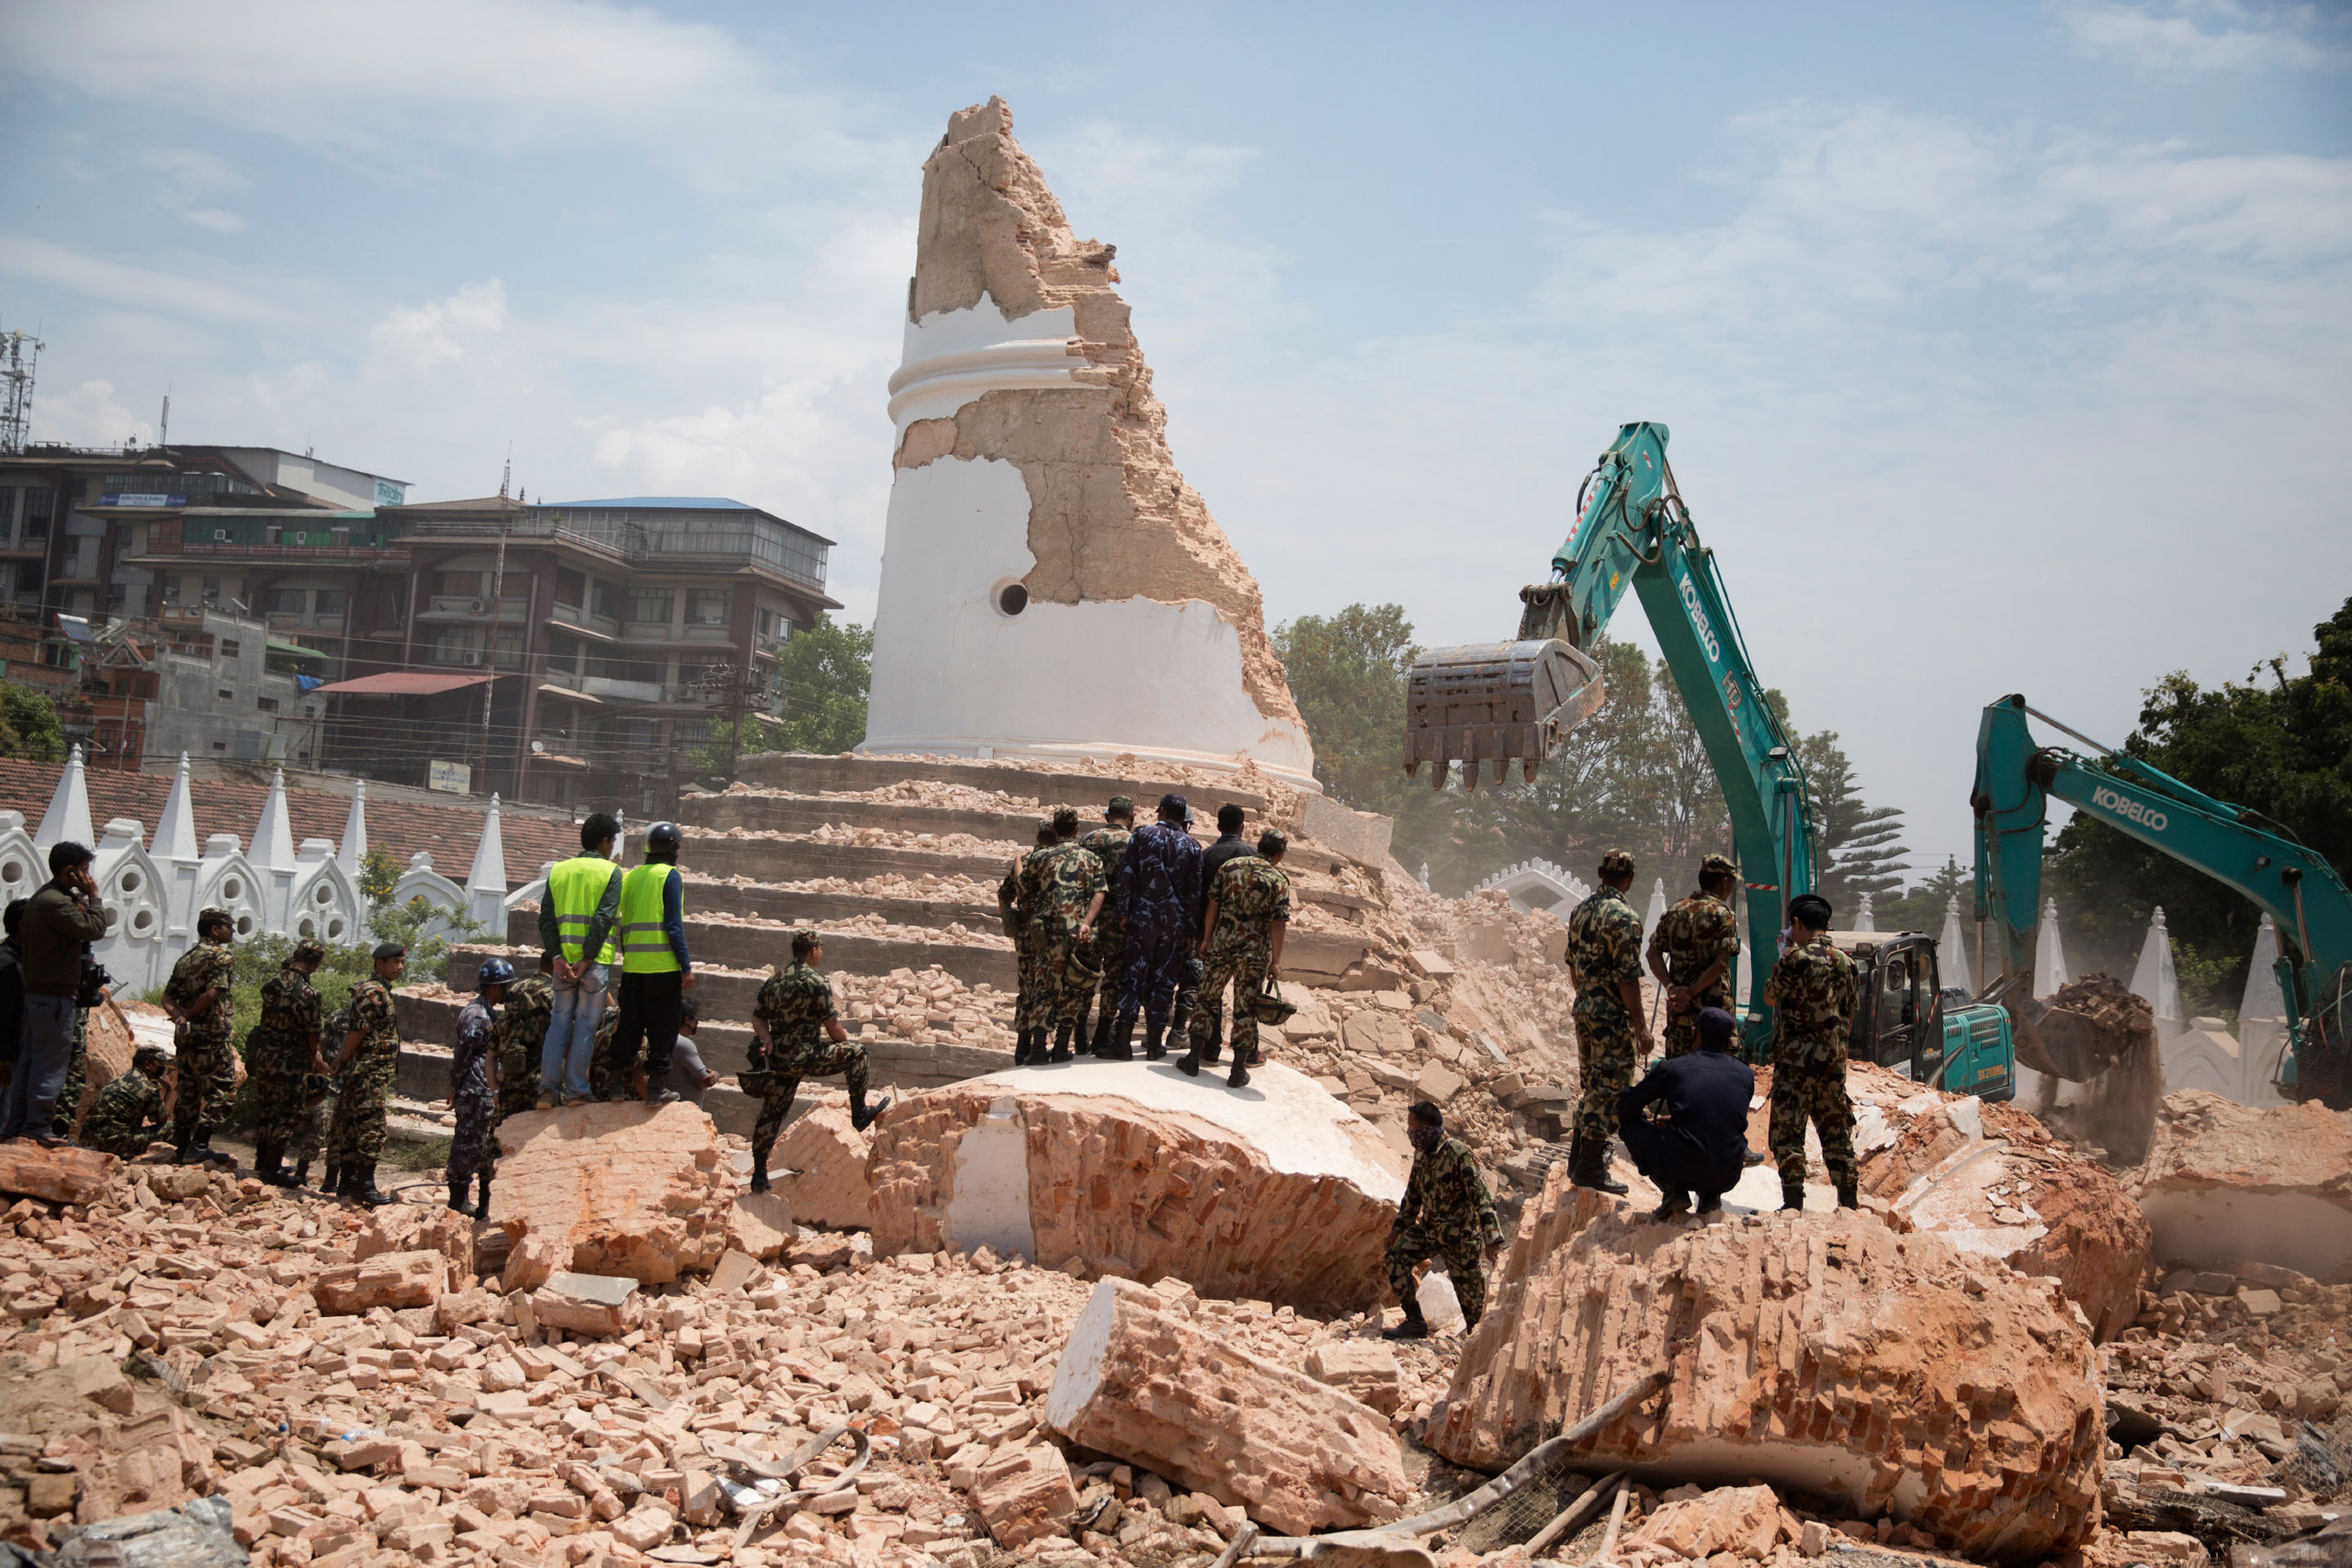 Nepalese forces excavate the Dharahara tower in Kathmandu, April 26, 2015. The building, a UNESCO world heritage site, was severely damaged in the earthquake.